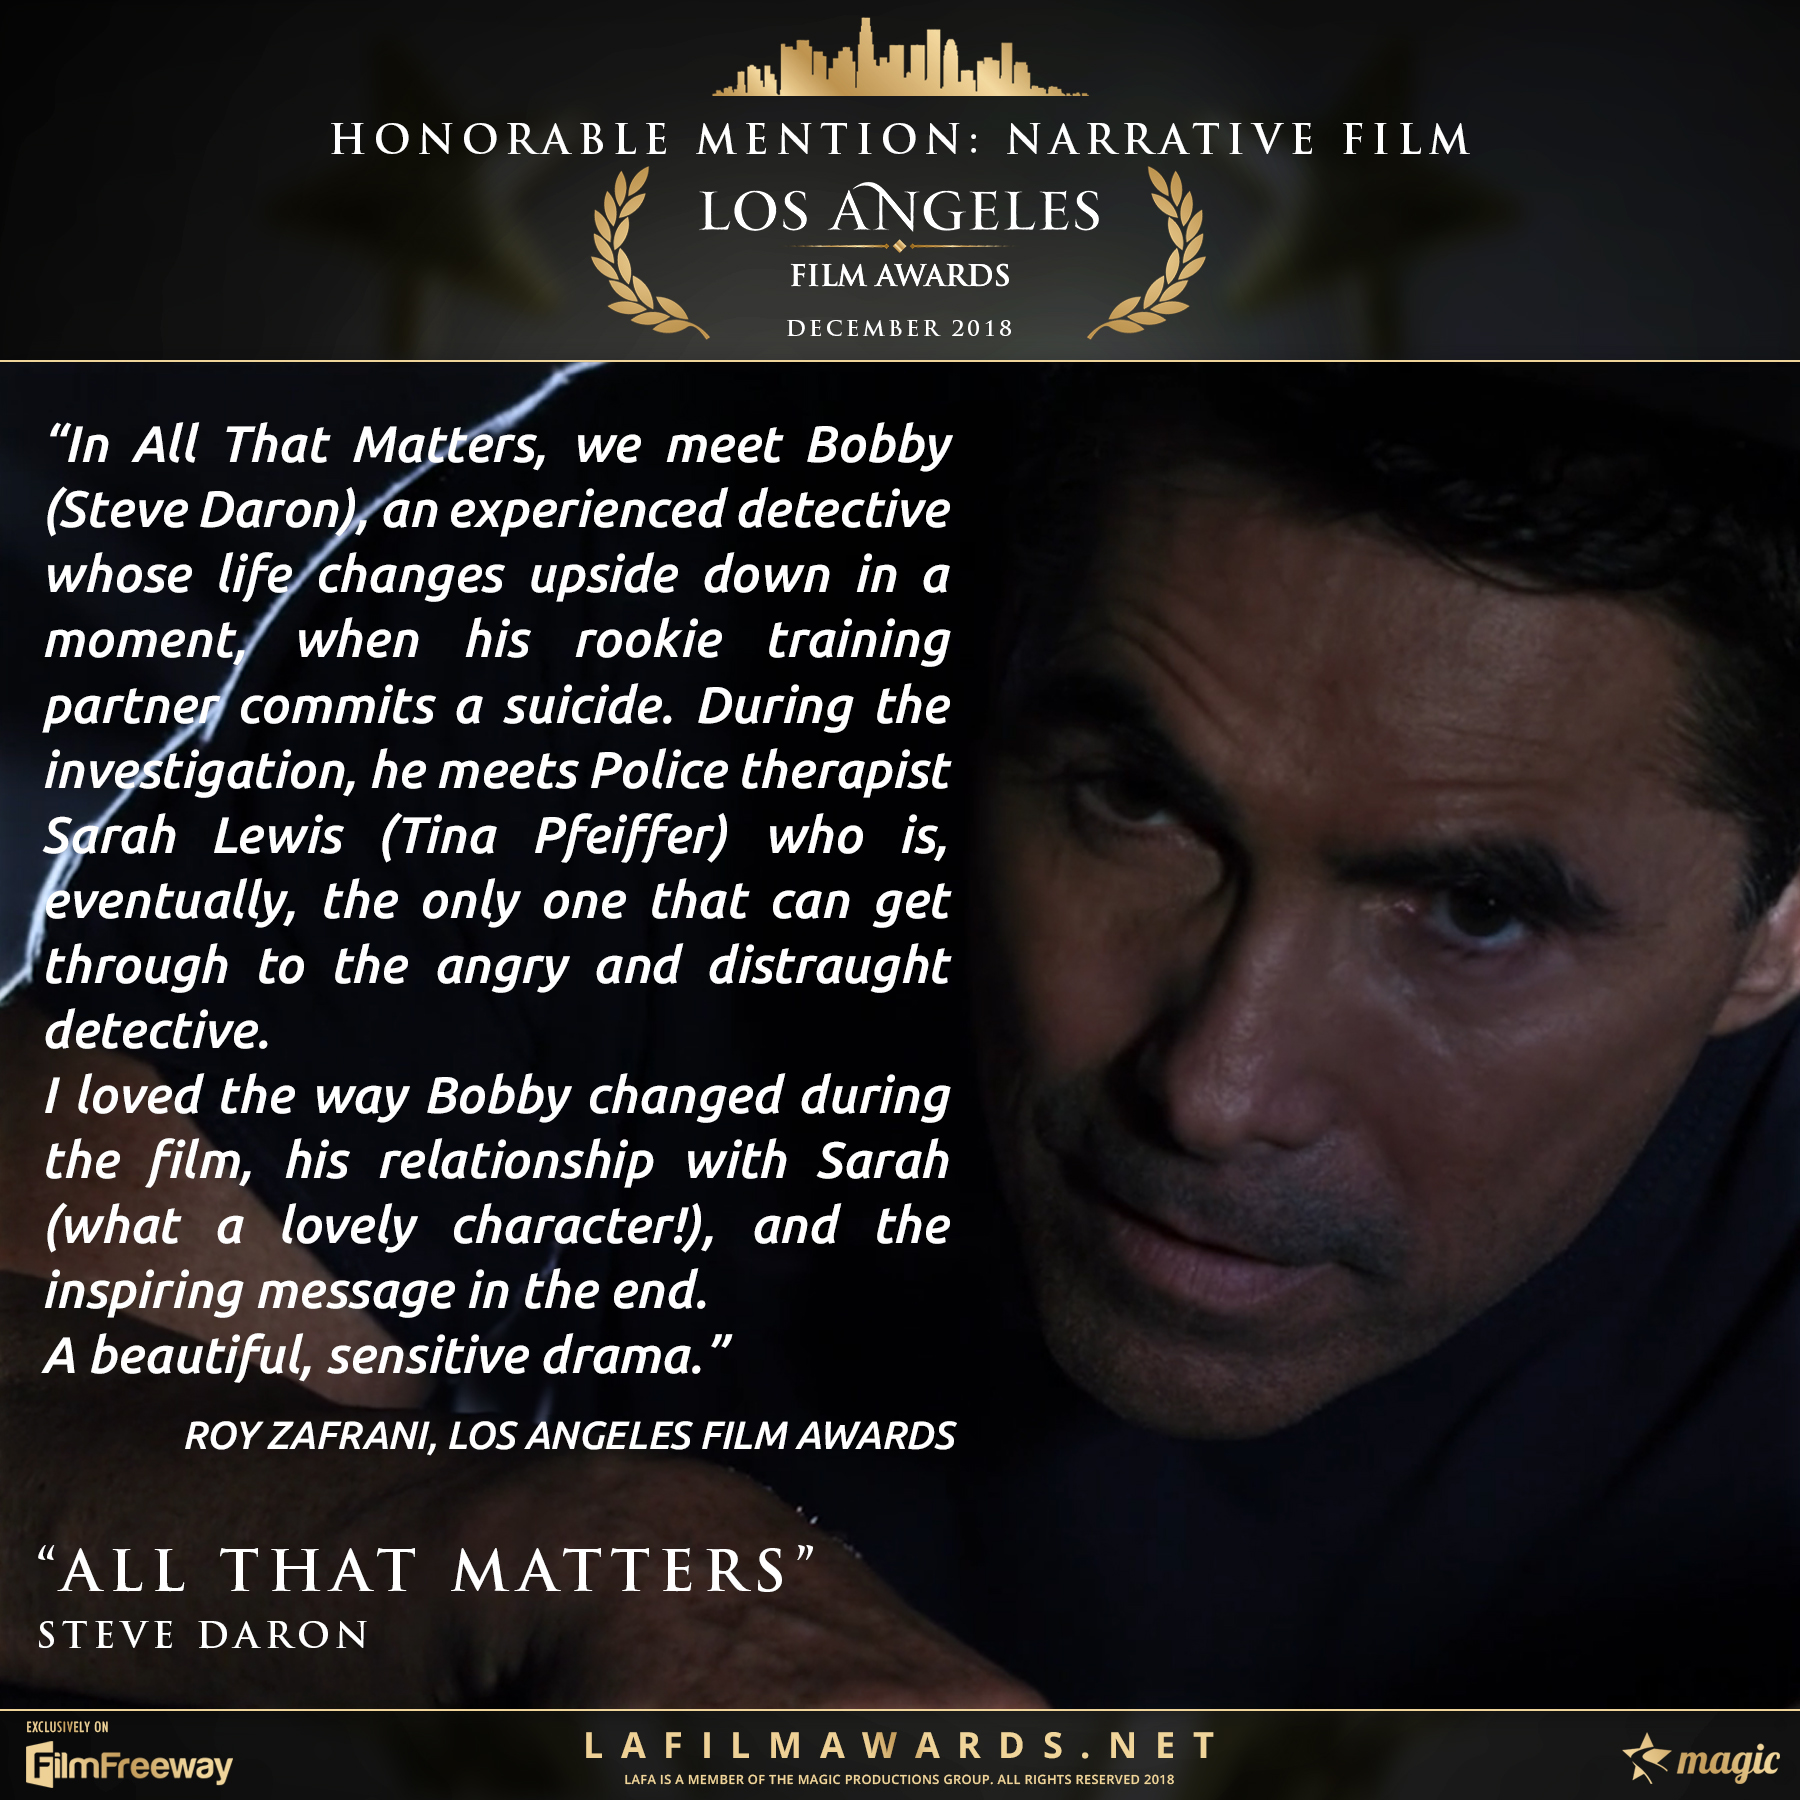 ALL THAT MATTERS - Review